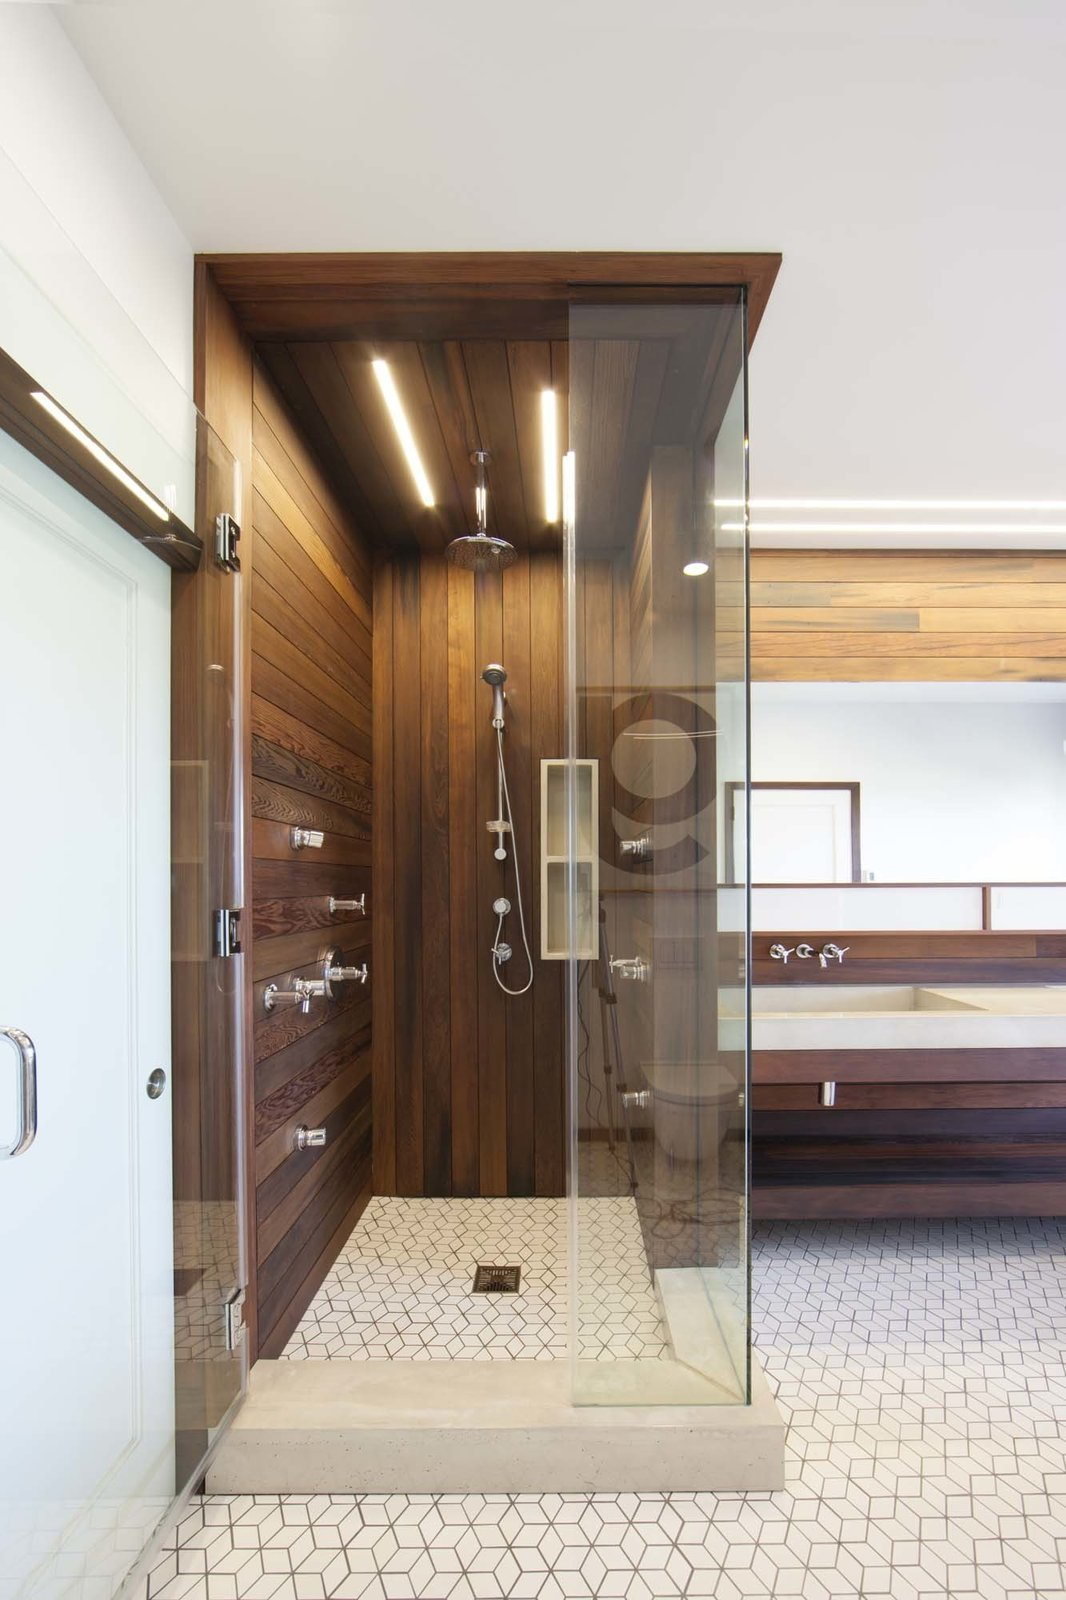 Bath Room, Enclosed Shower, Full Shower, and Ceramic Tile Floor  Photo 7 of 11 in Secrets You Need to Know When Using Wood in Wet Spaces